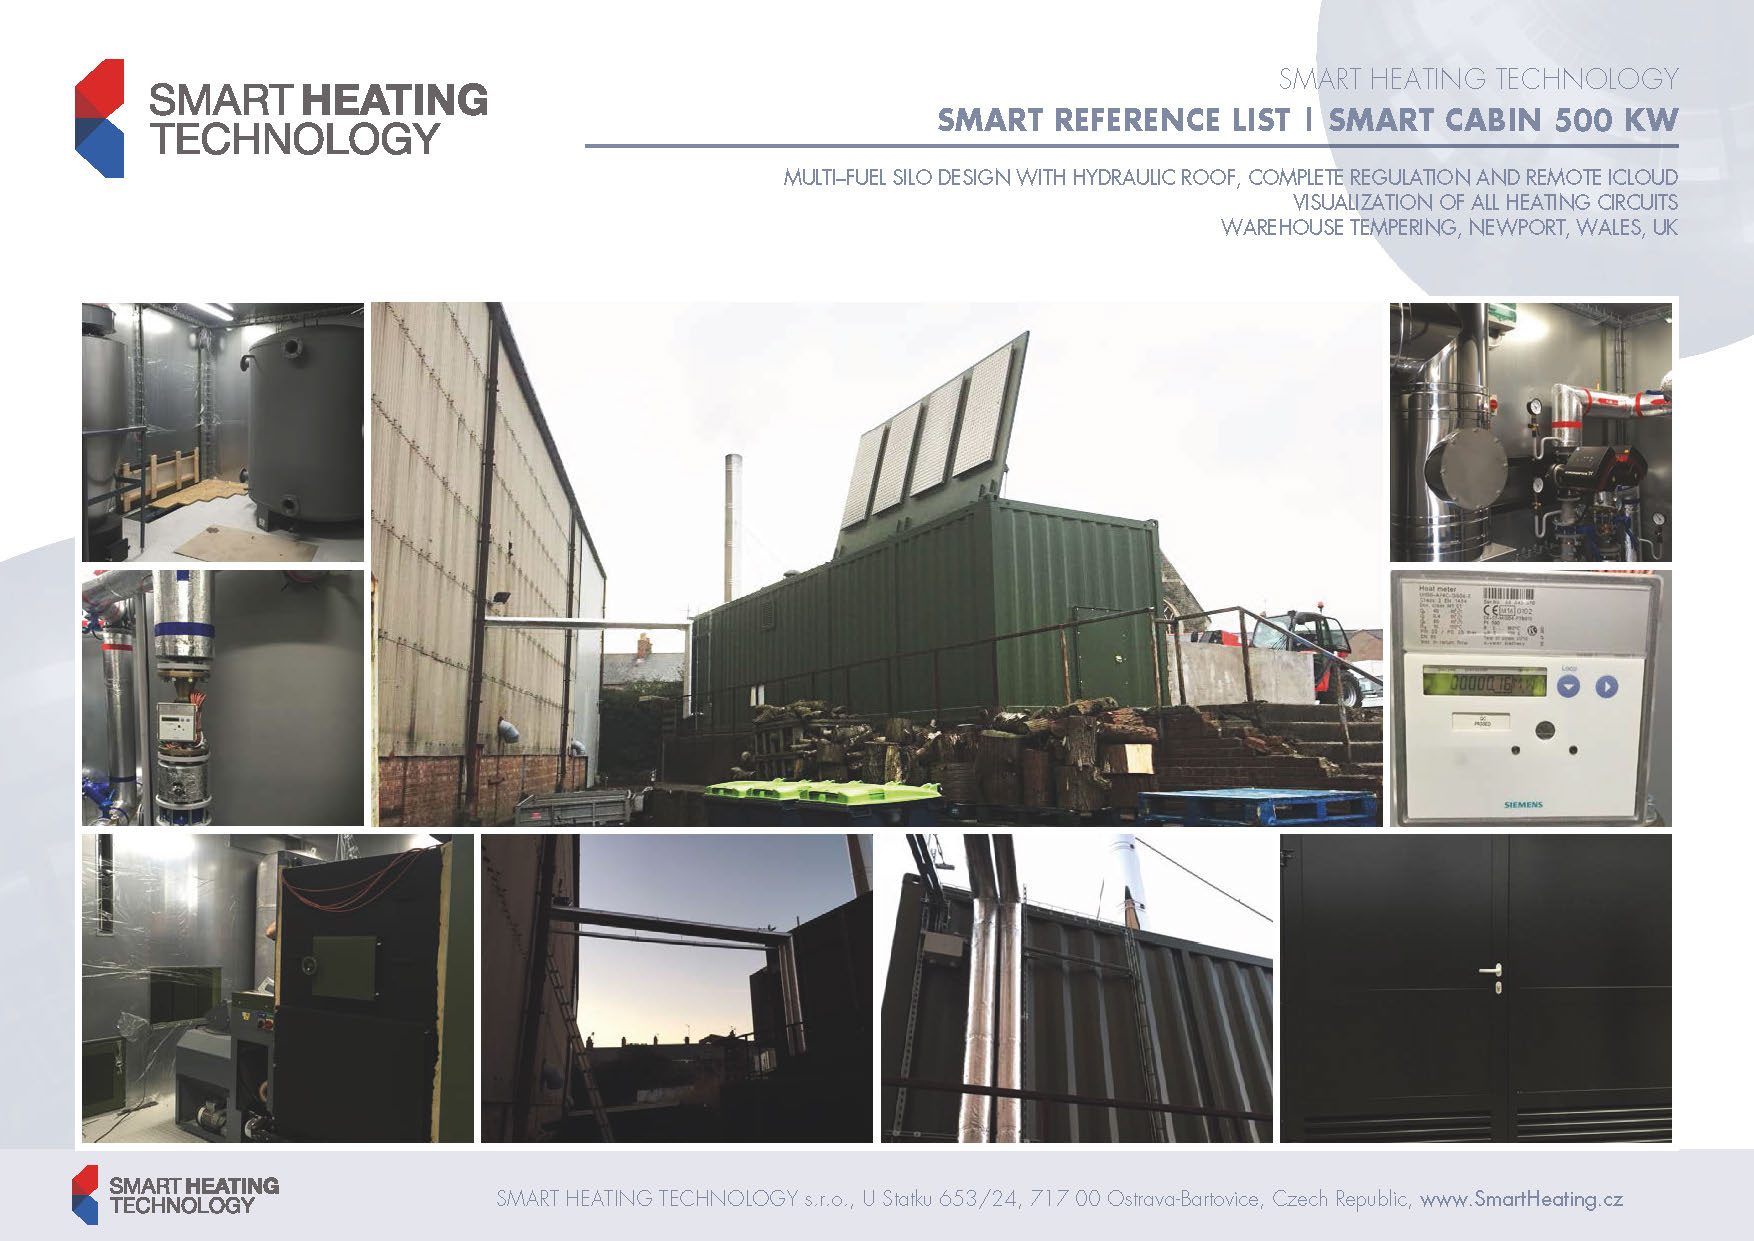 SHT-Smart Reference_List-Smart_Cabin 500_kW-J4J2-Newport-UK